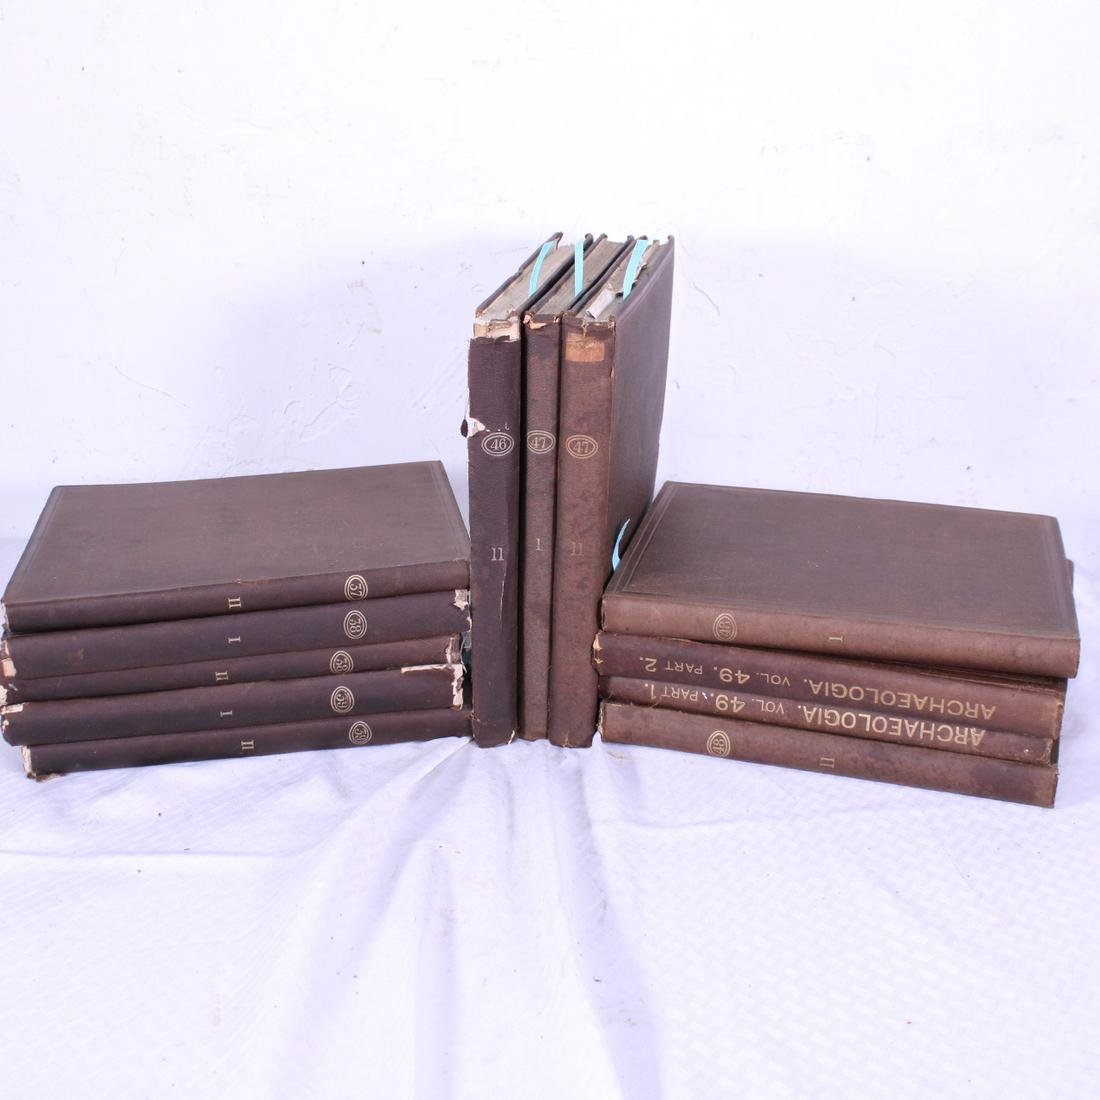 ARCHAEOLOGIA, 1ST EDITION, 12 VOLUMES